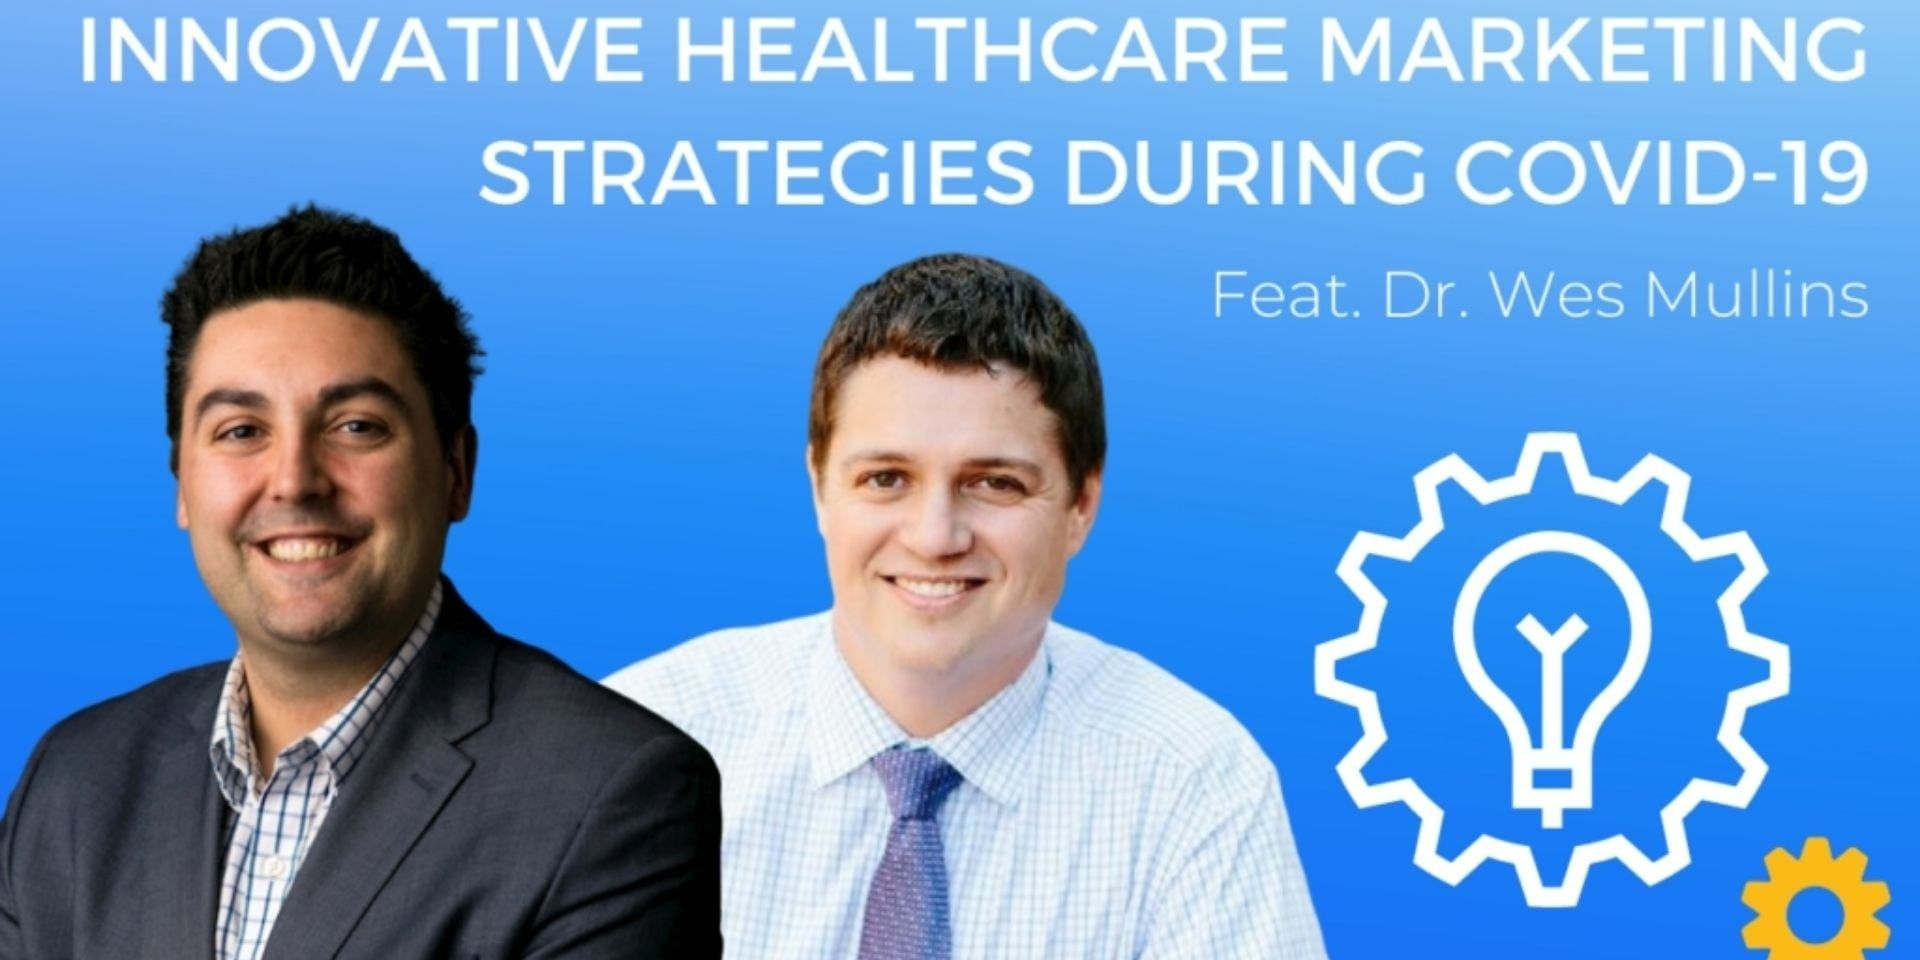 Healthcare marketing ideas during COVID